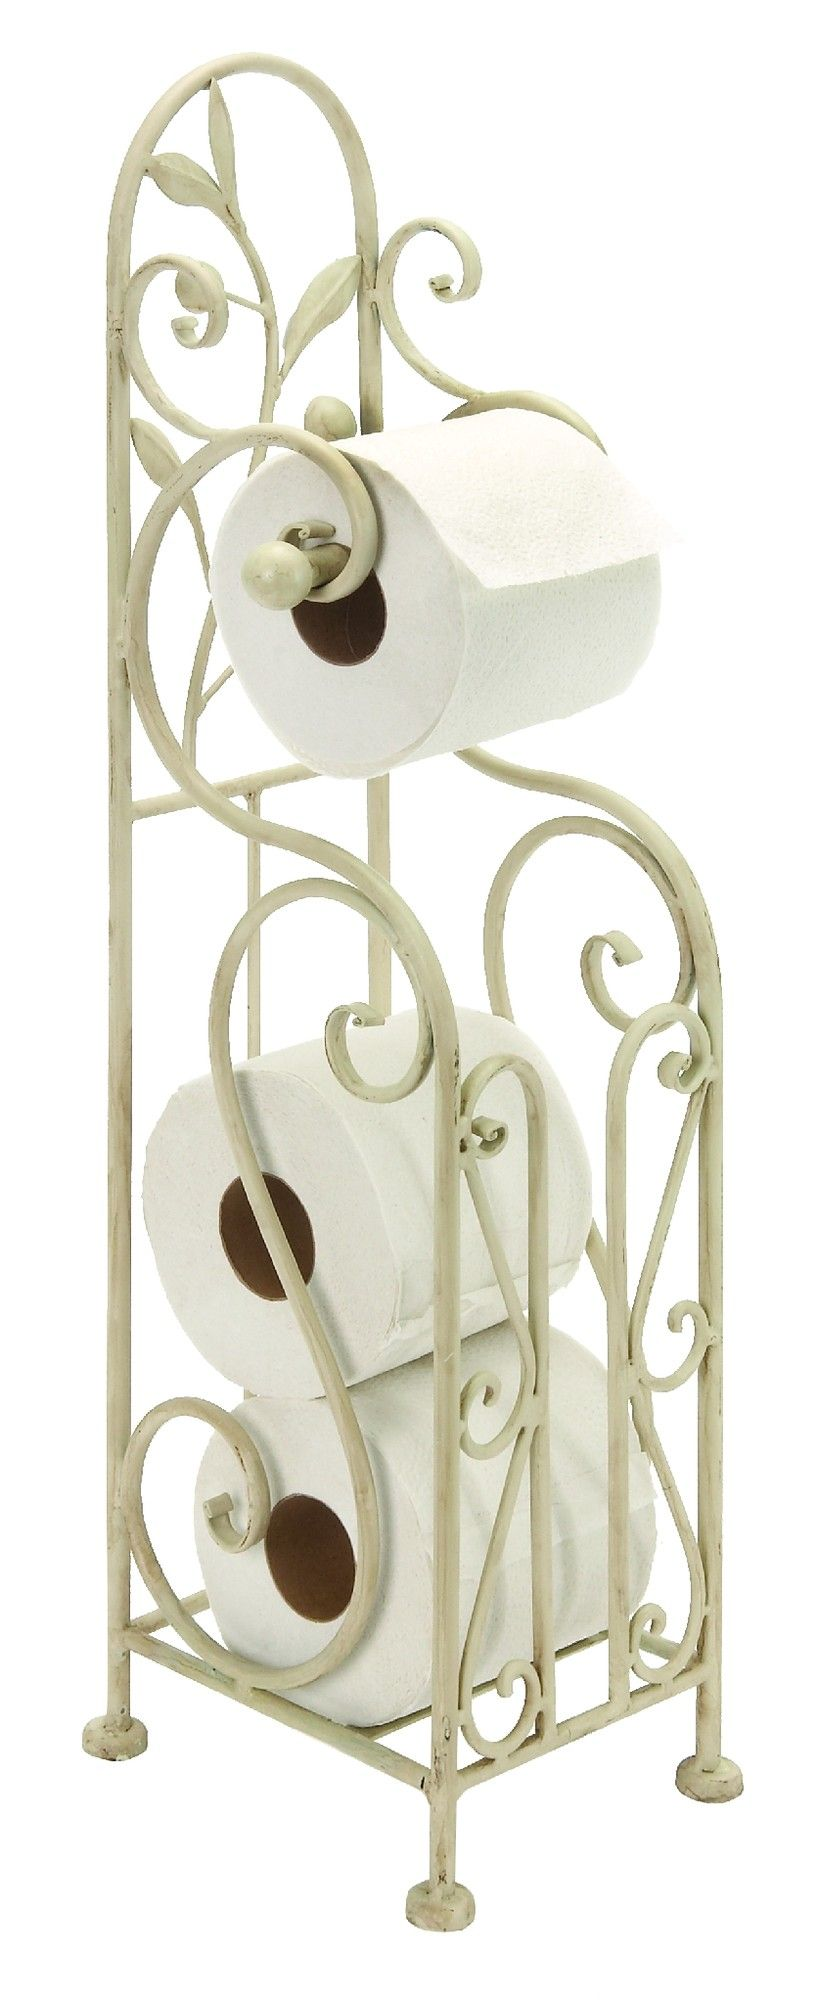 Woodland Imports Free Standing Toilet Paper Holder Free Standing Toilet Paper Holder Toilet Paper Stand Toilet Paper